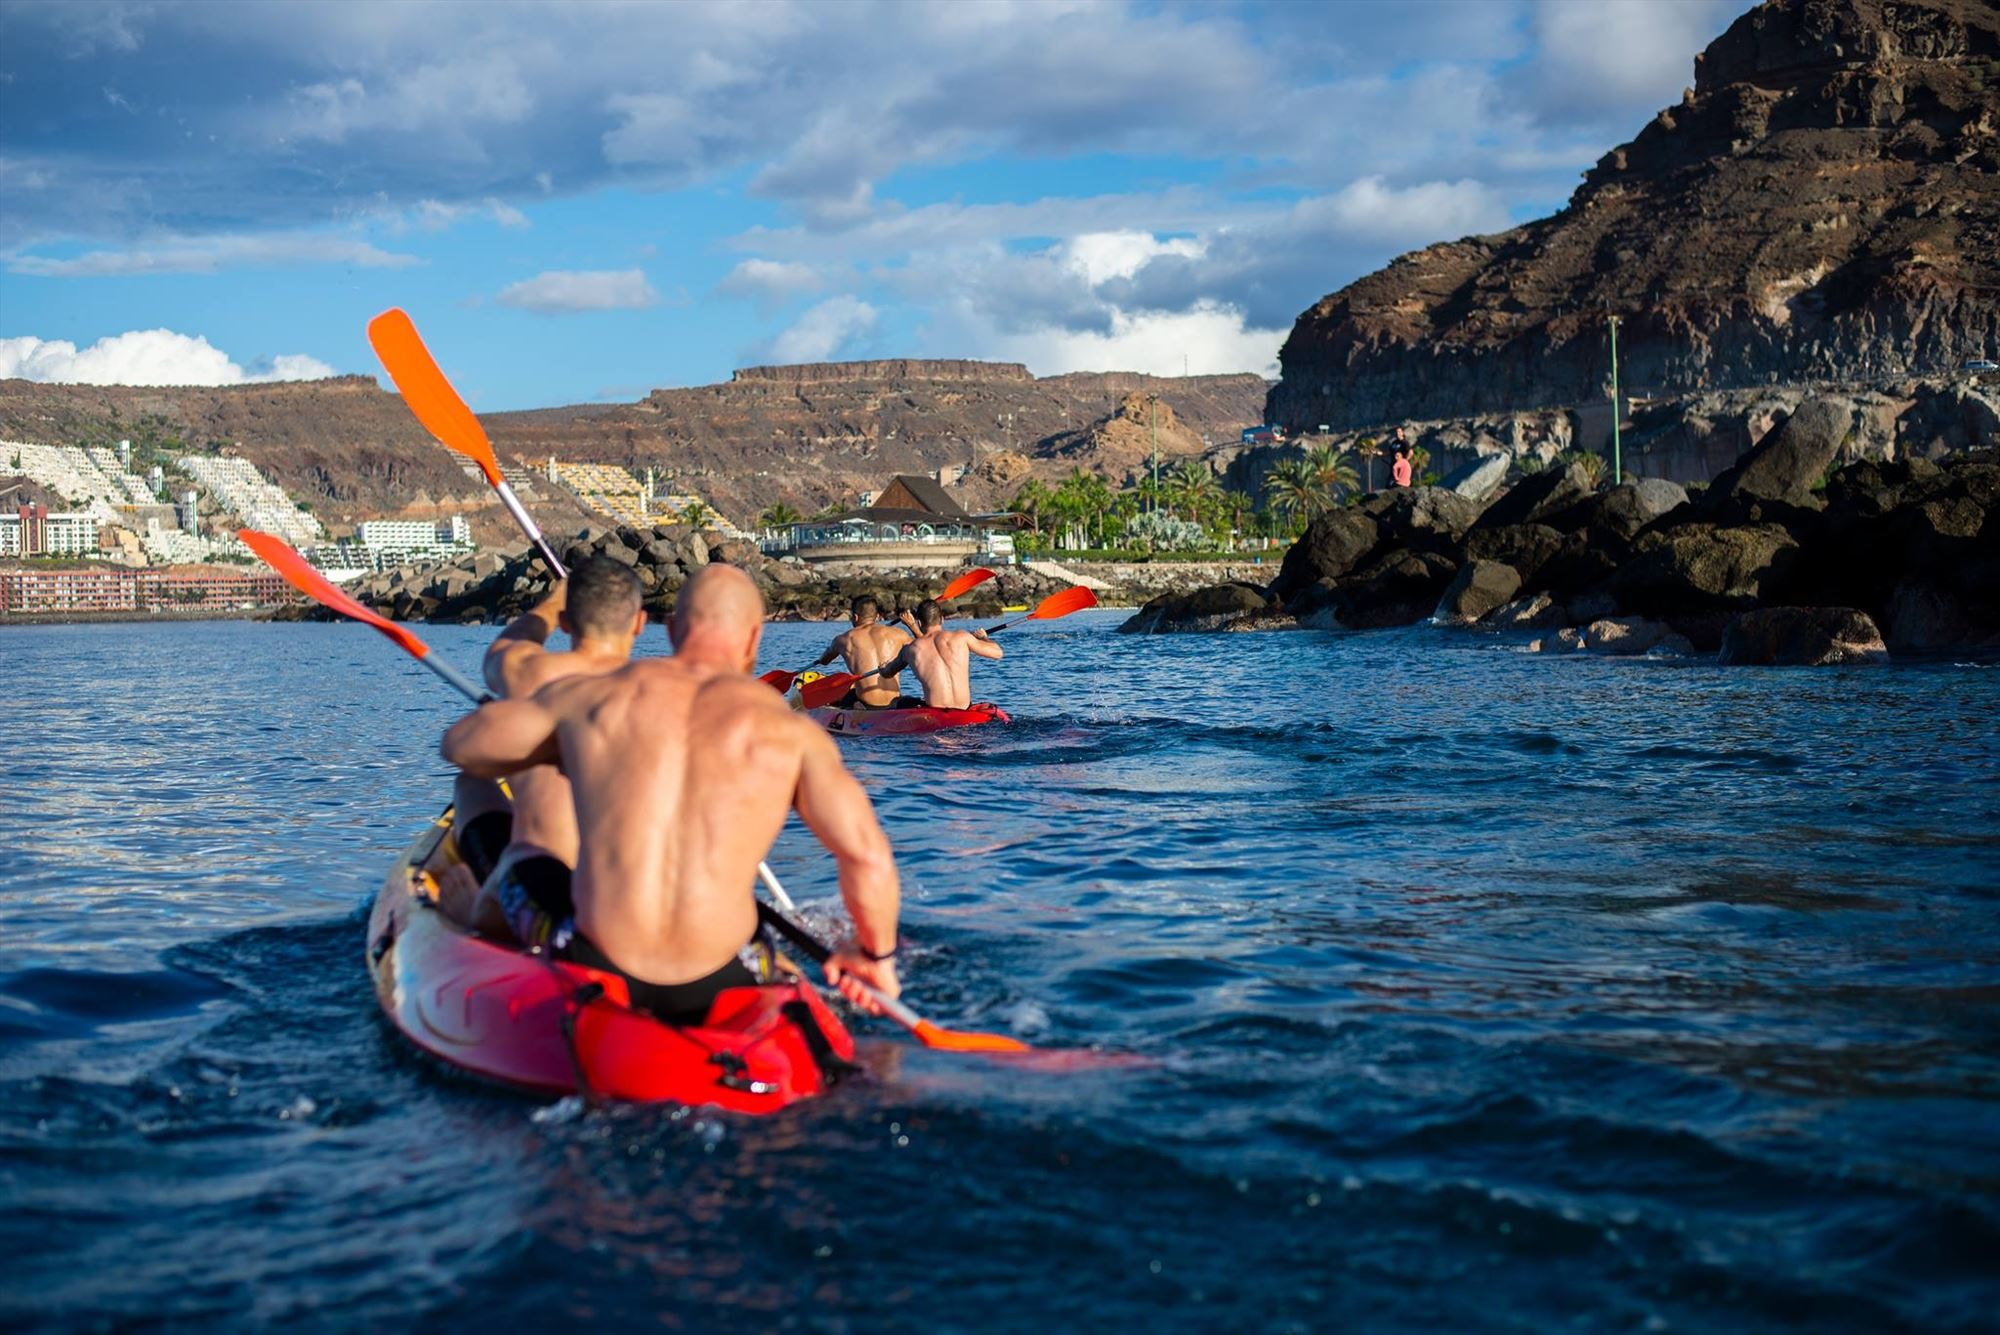 Crossfit camps Europe: your sports holidays in Gran Canaria